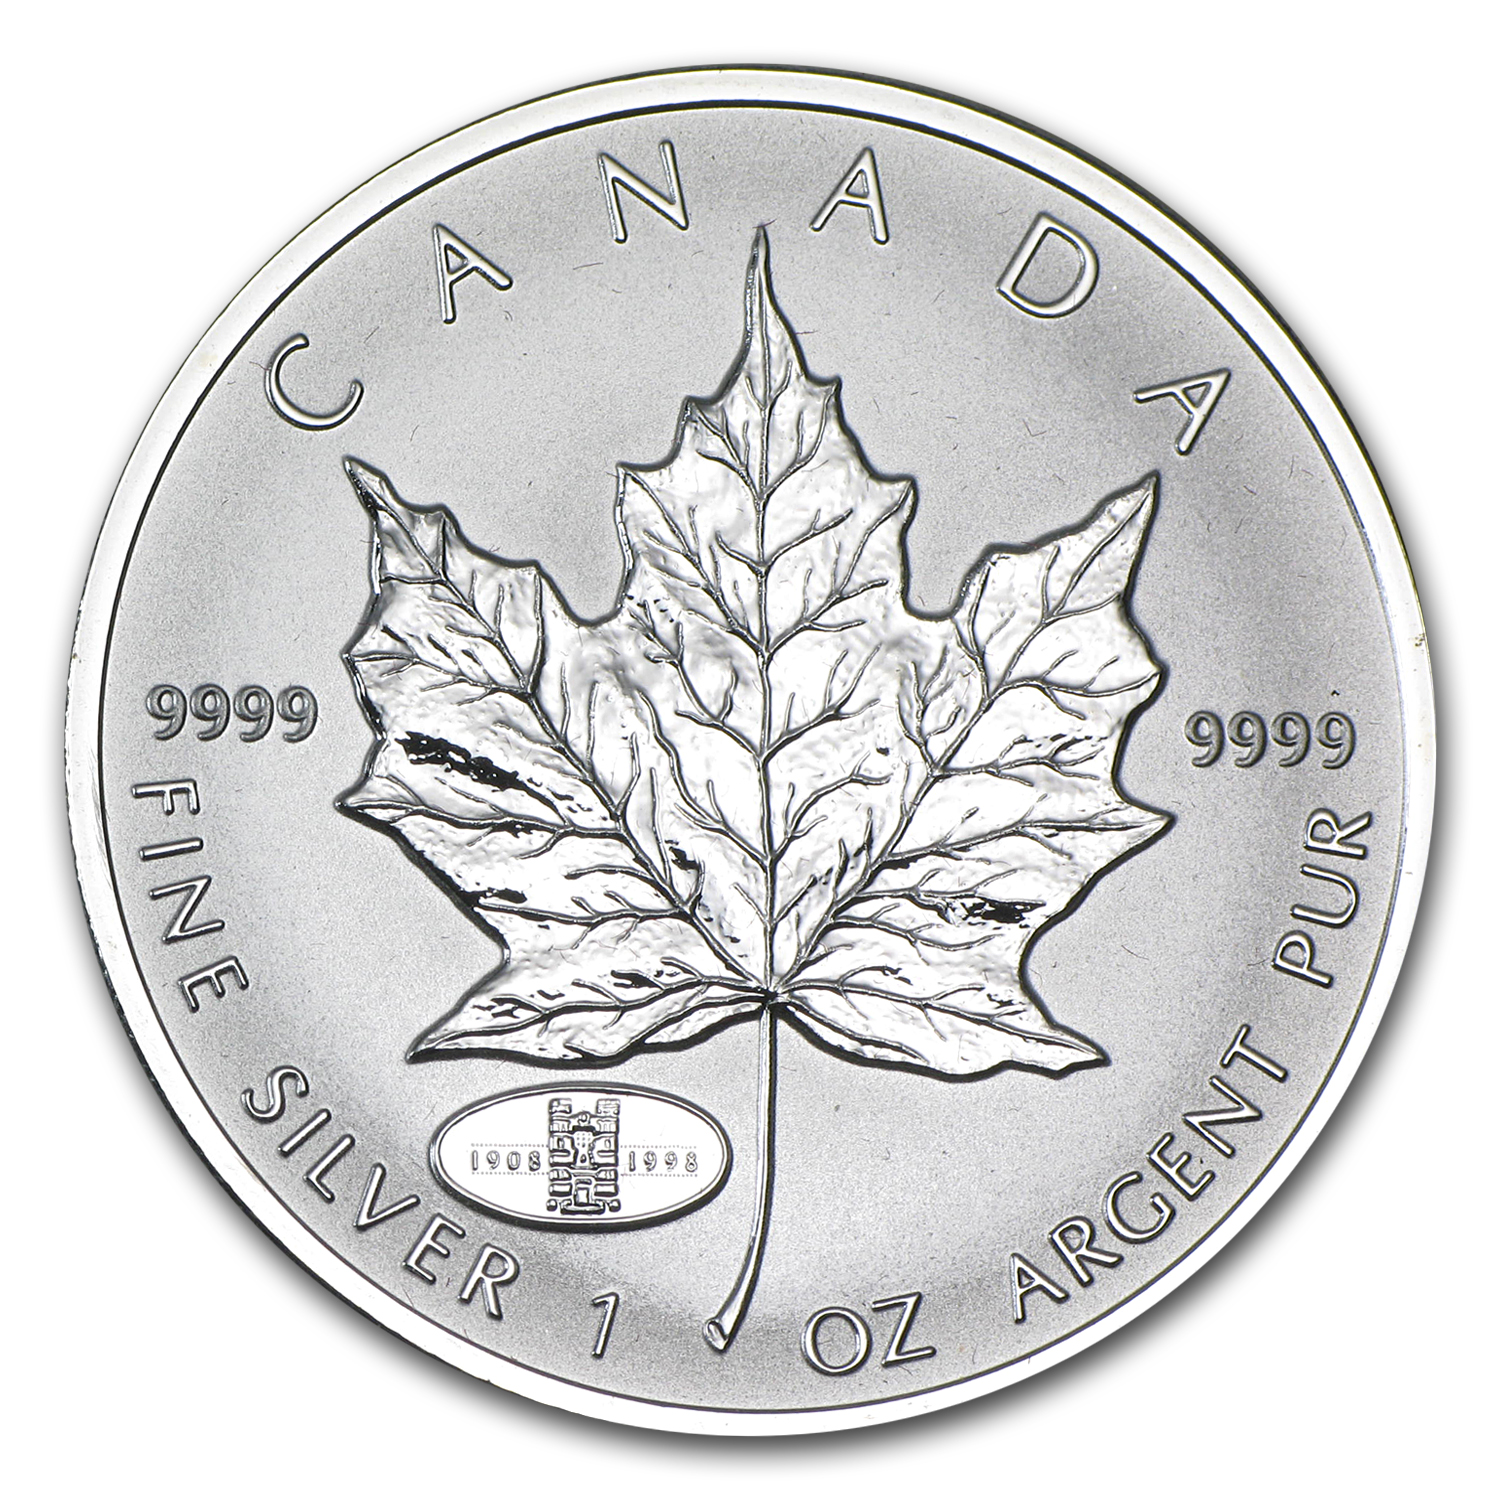 1998 1 oz Silver Canadian Maple Leaf - RCM 90th Anniversary Privy